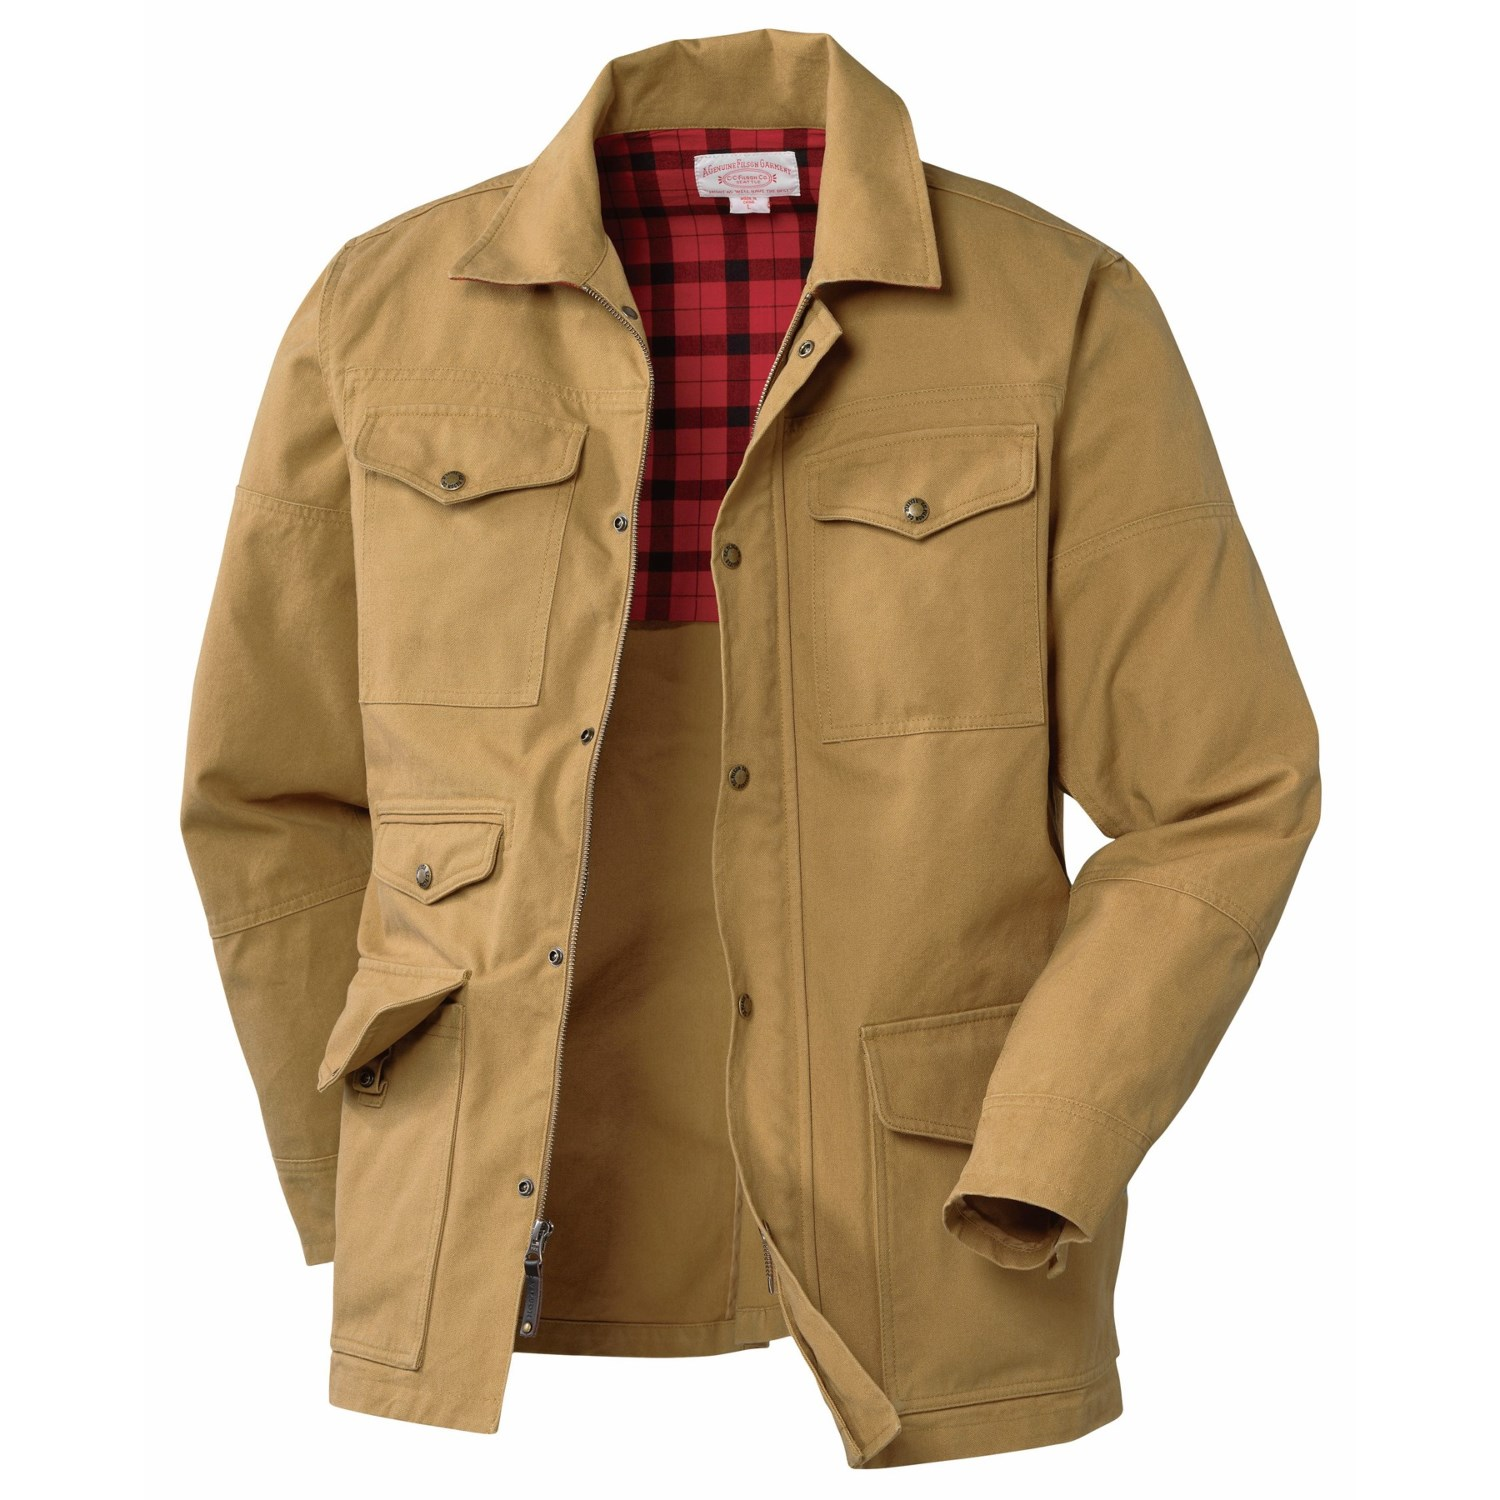 You searched for: barn jacket! Etsy is the home to thousands of handmade, vintage, and one-of-a-kind products and gifts related to your search. No matter what you're looking for or where you are in the world, our global marketplace of sellers can help you find unique and affordable options. Let's get started!